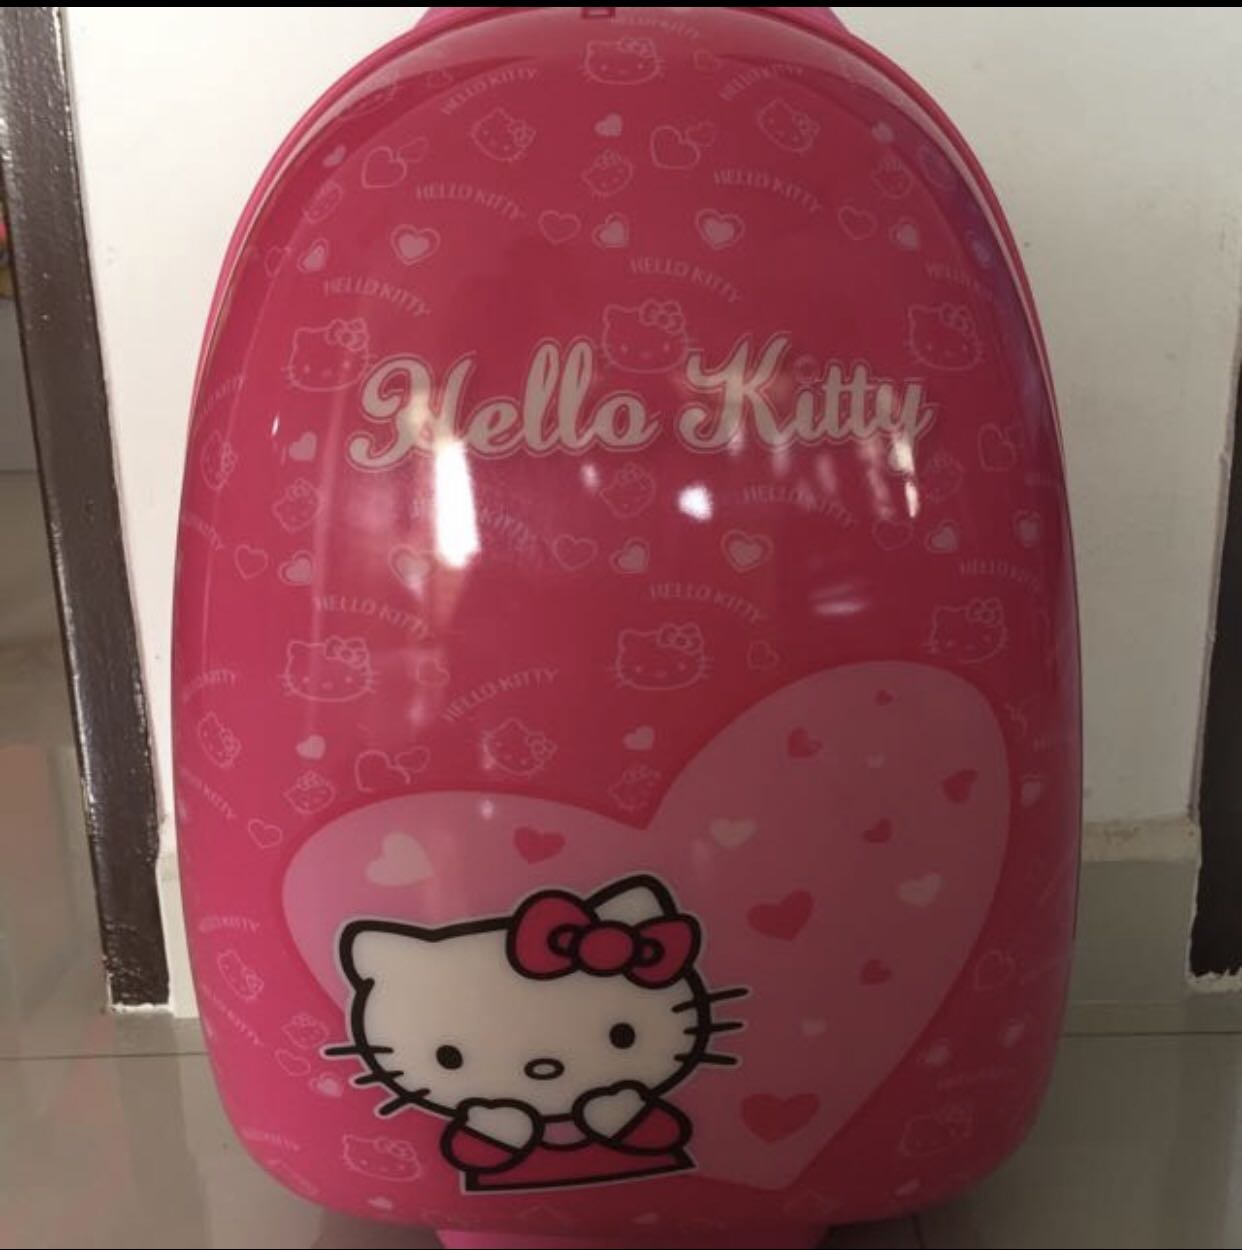 d3c4cfff6 16 inch Hello Kitty travel luggage, Babies & Kids, Strollers, Bags &  Carriers on Carousell